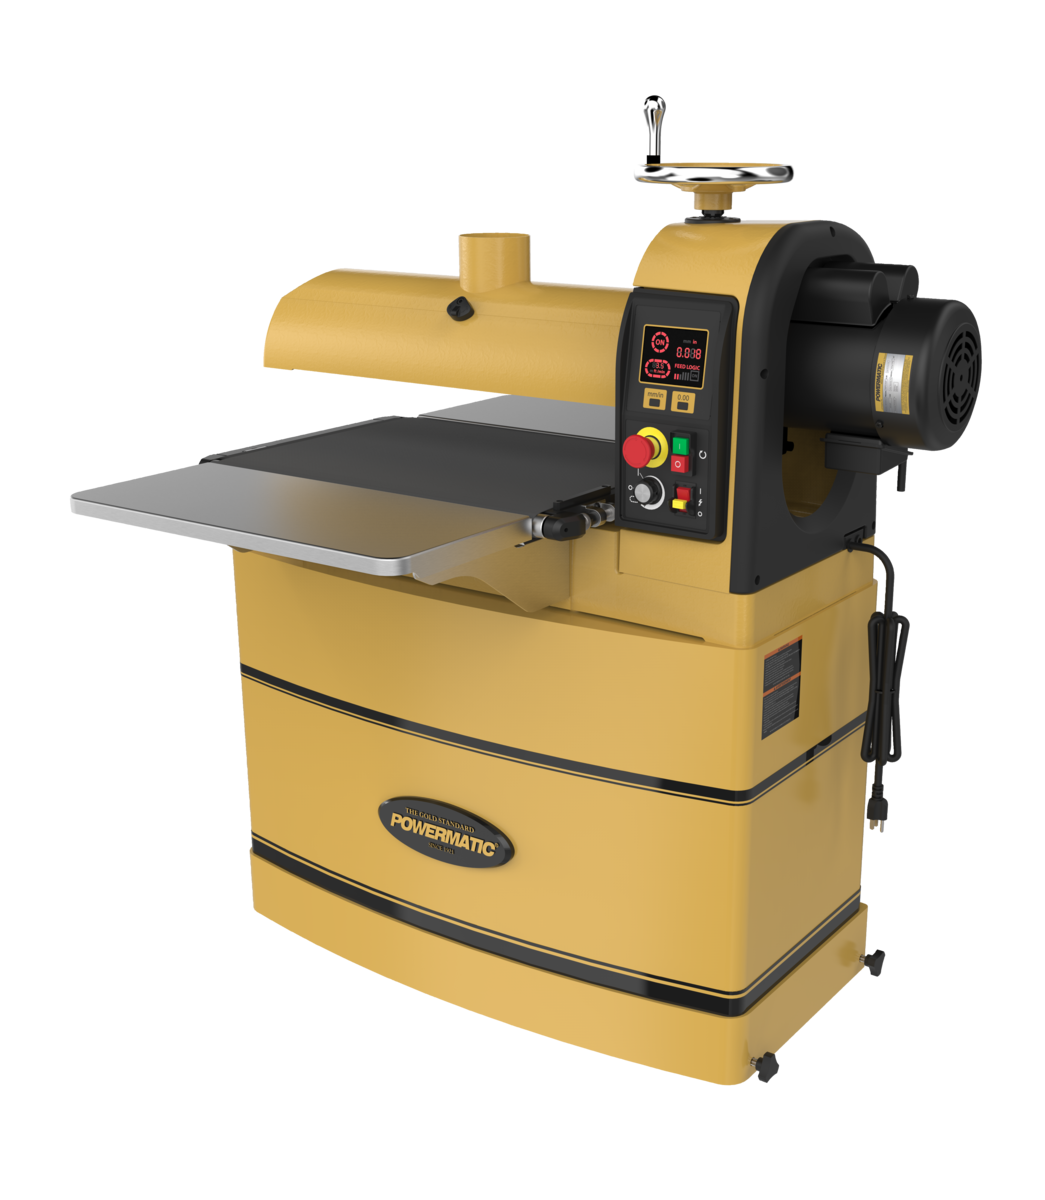 Manual: PM2244 Drum Sander, 1-3/4HP, 115V